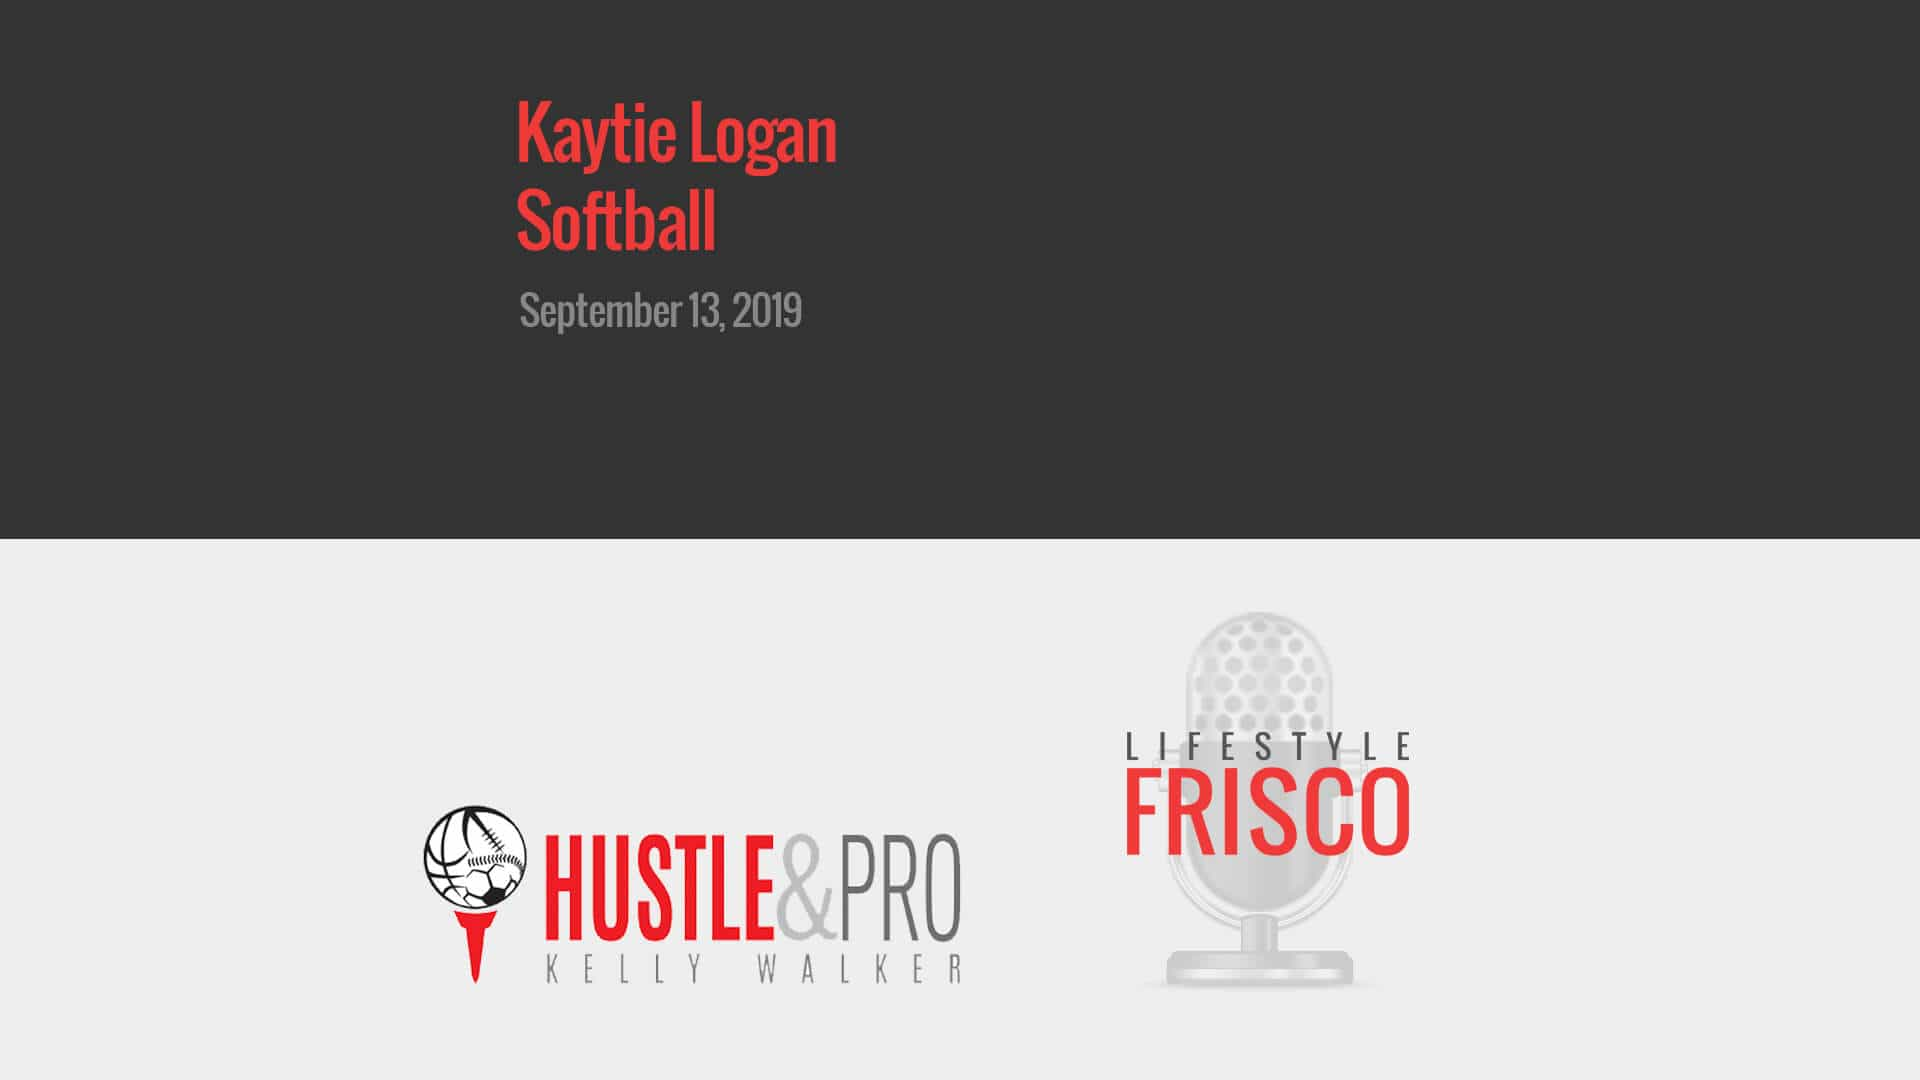 fb lifestyle frisco hustle and pro episode 0028